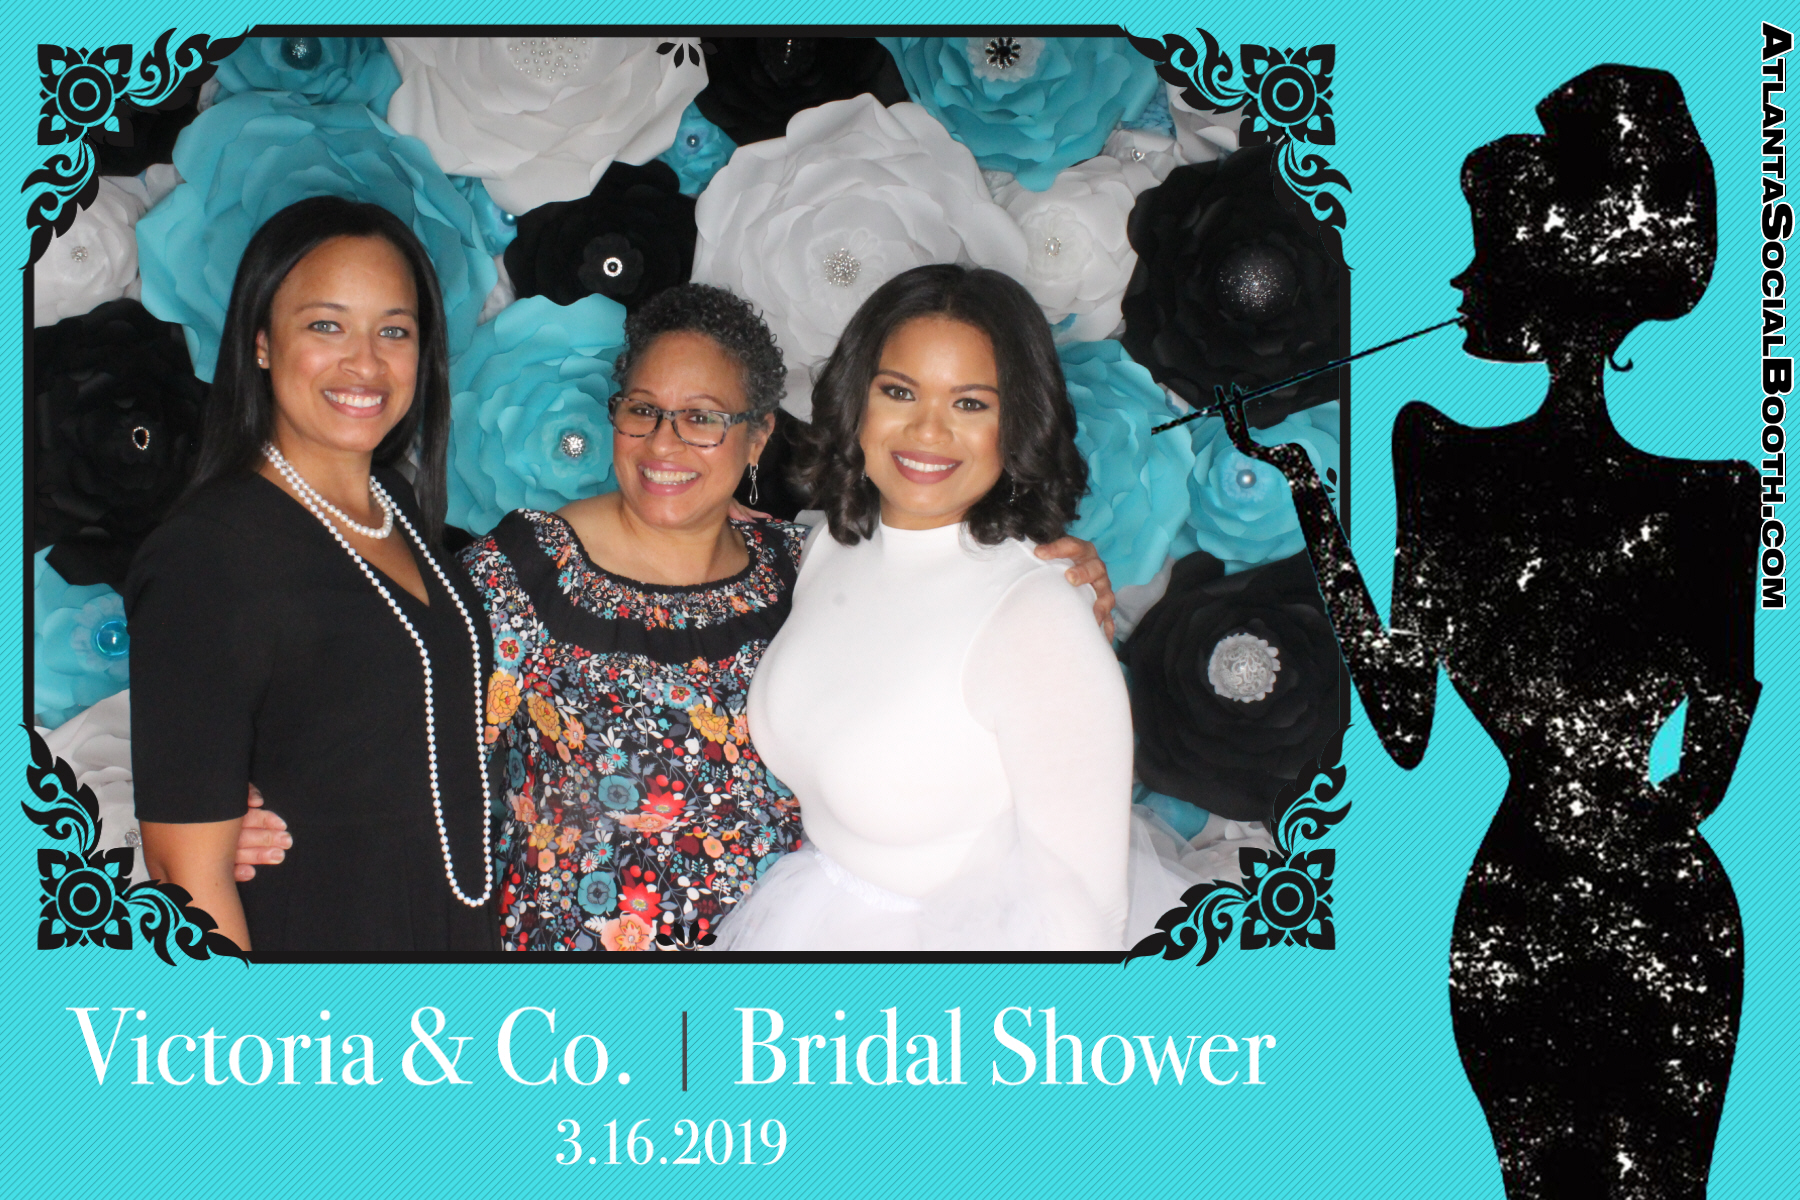 Victoria & Co. Bridal Shower